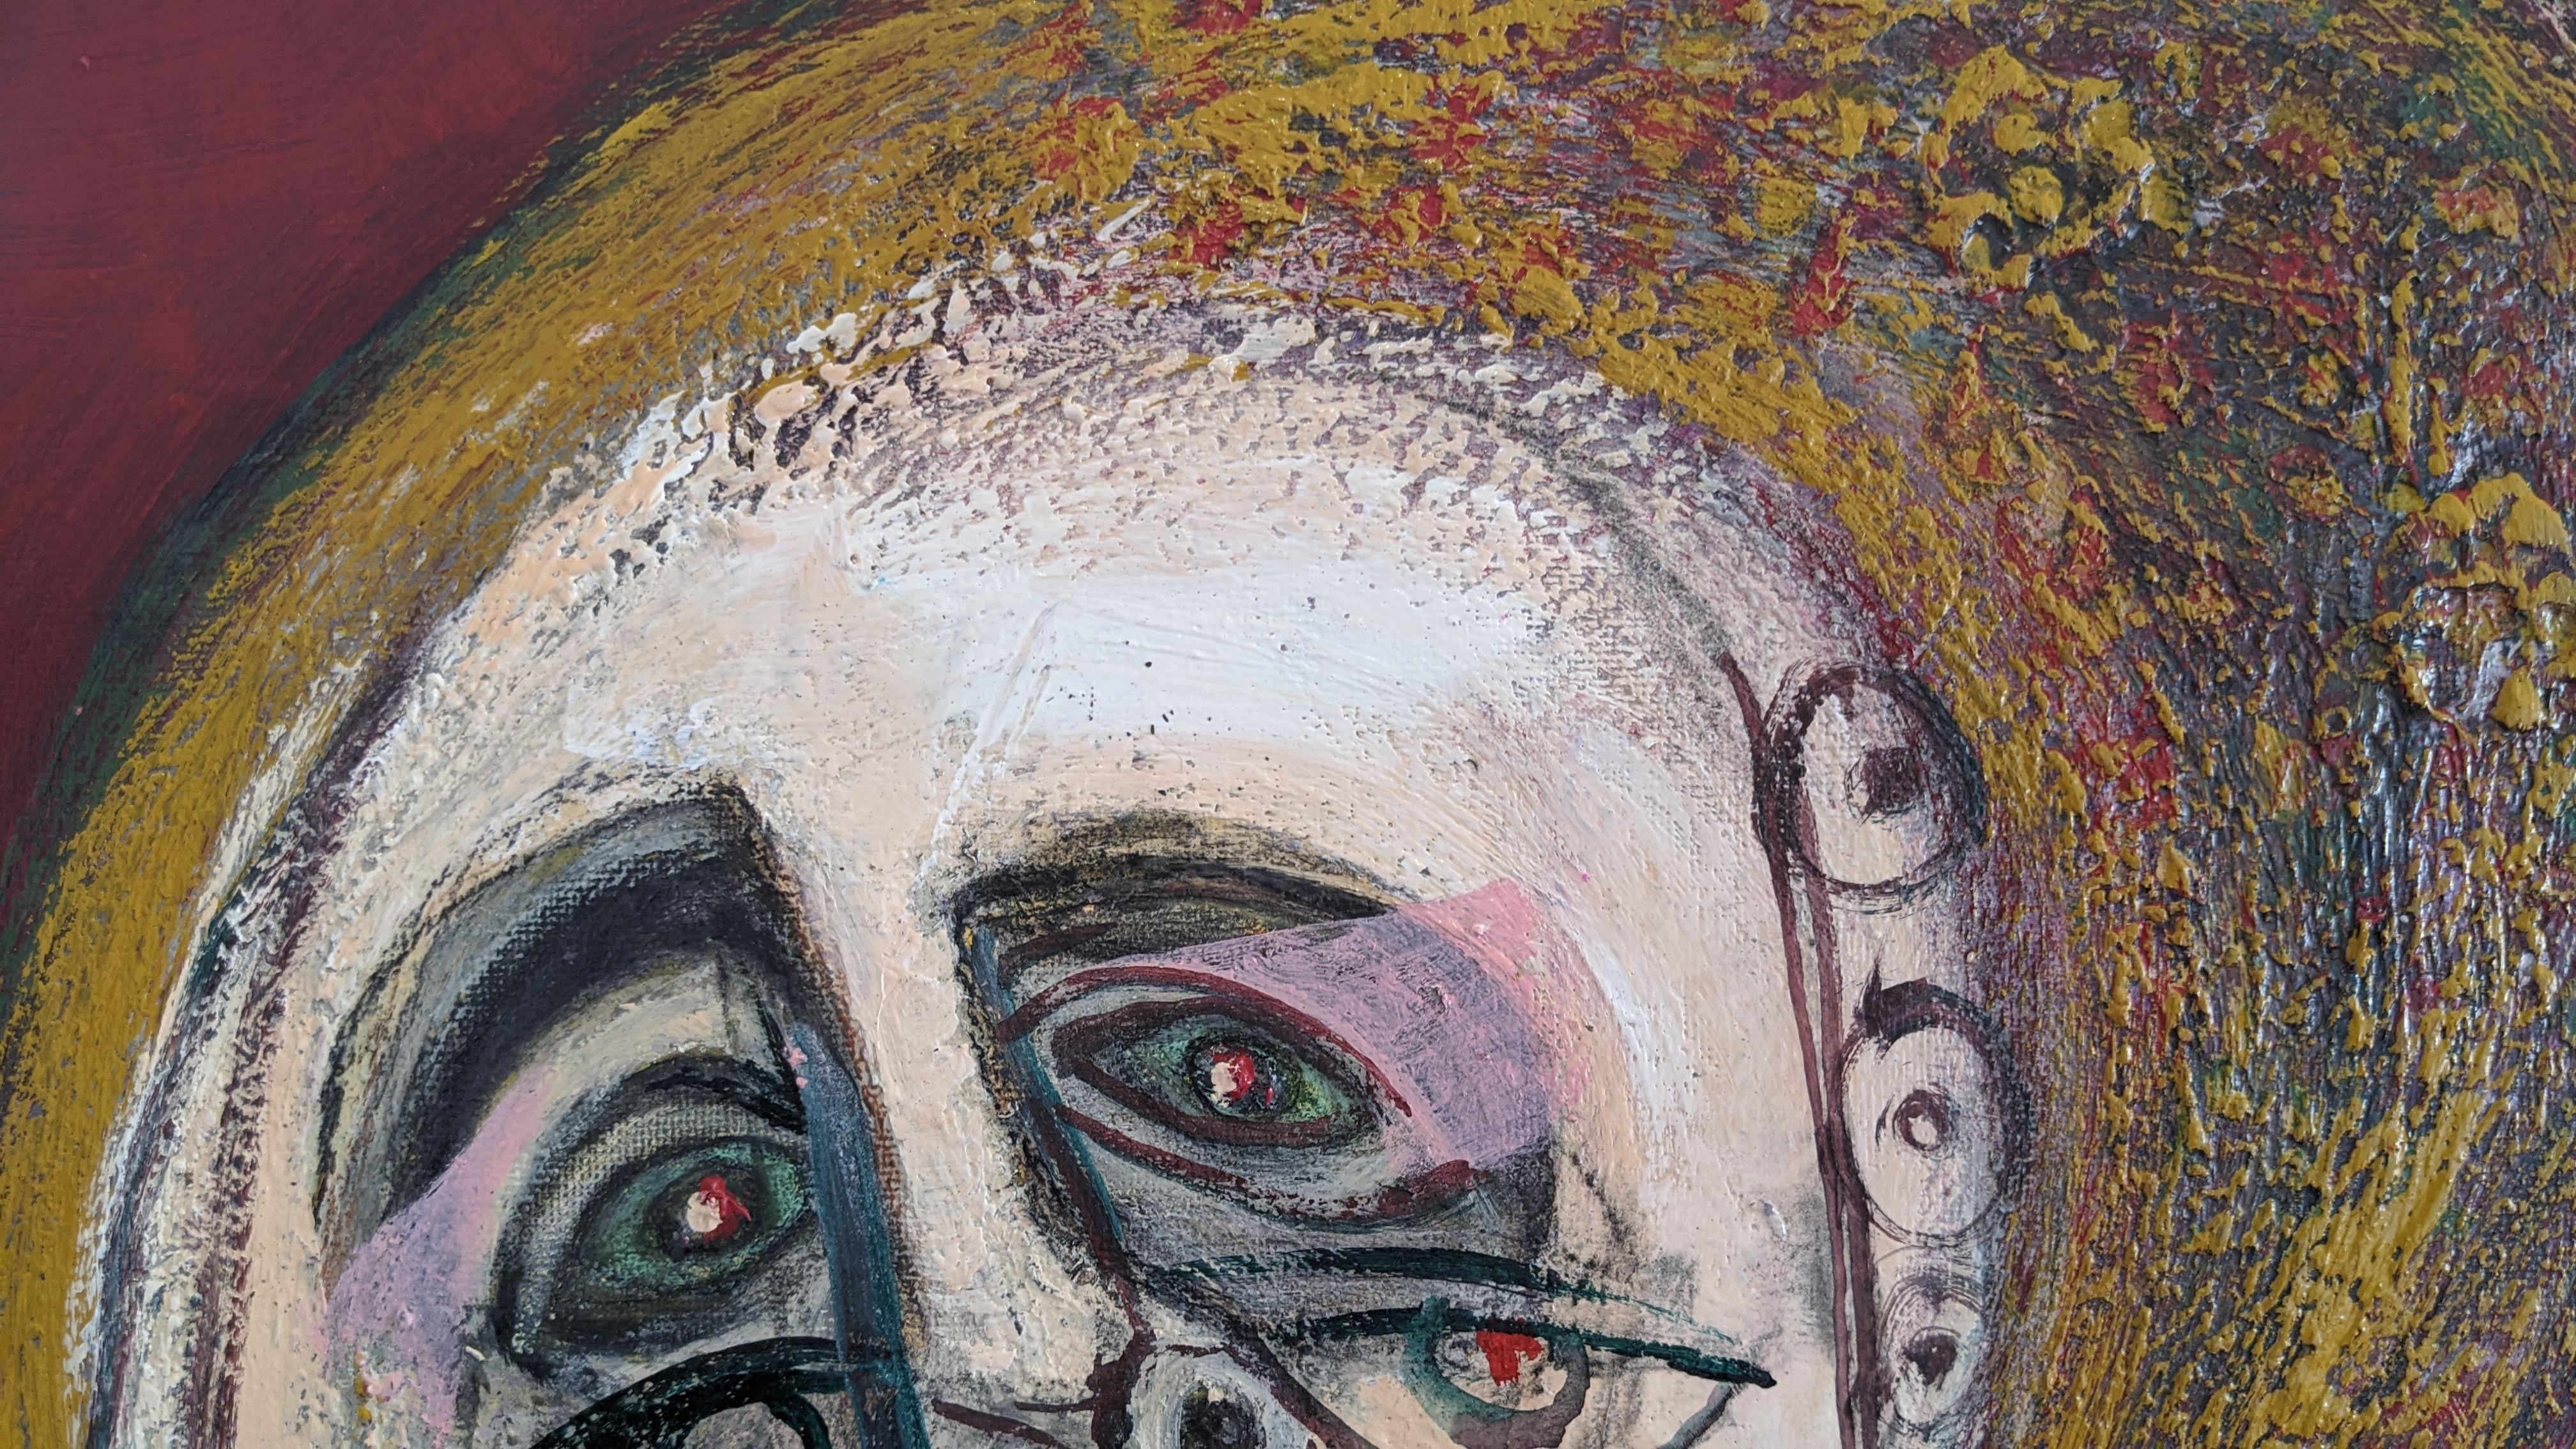 Painting, Layers of Paint, Gold, Red, Eye Glasses, Female Artist,